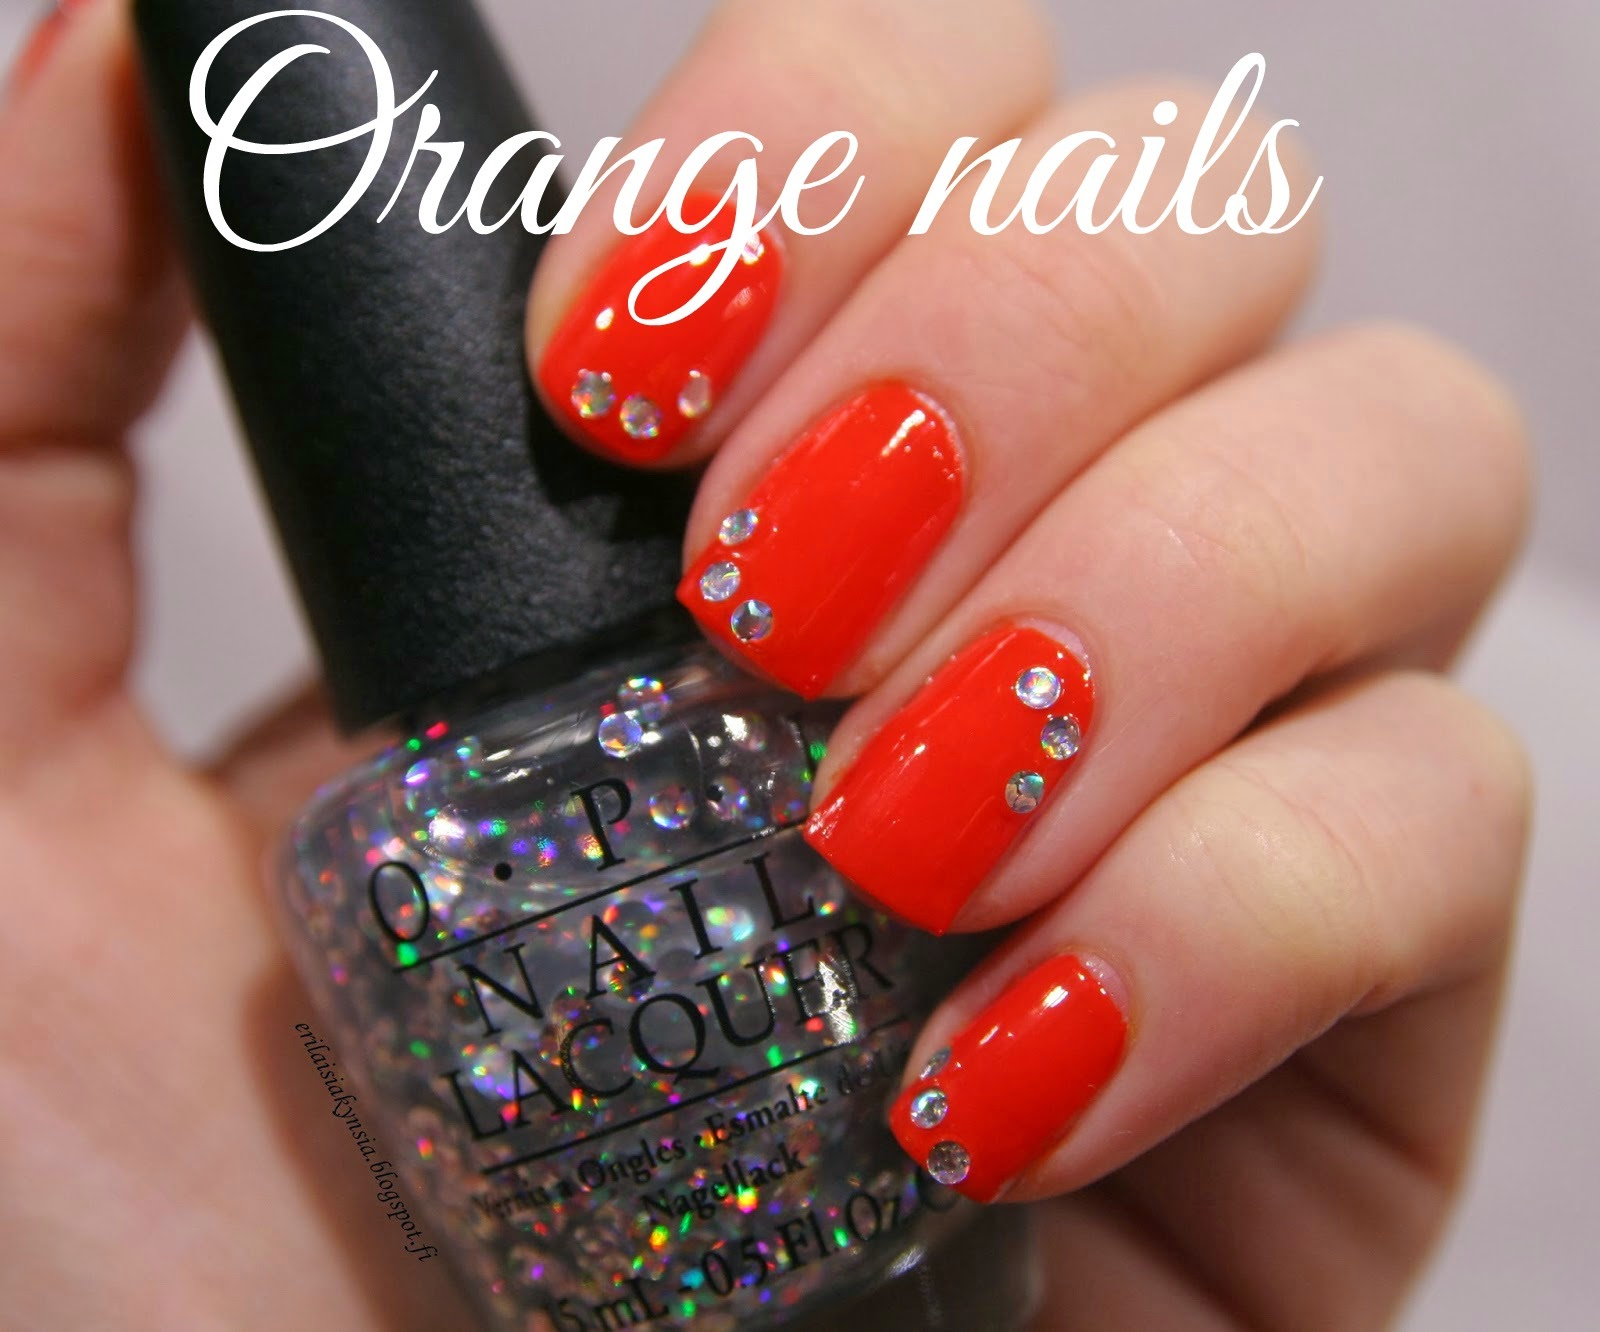 http://erilaisiakynsia.blogspot.fi/2014/02/148-31dnc-2-orange-nails.html